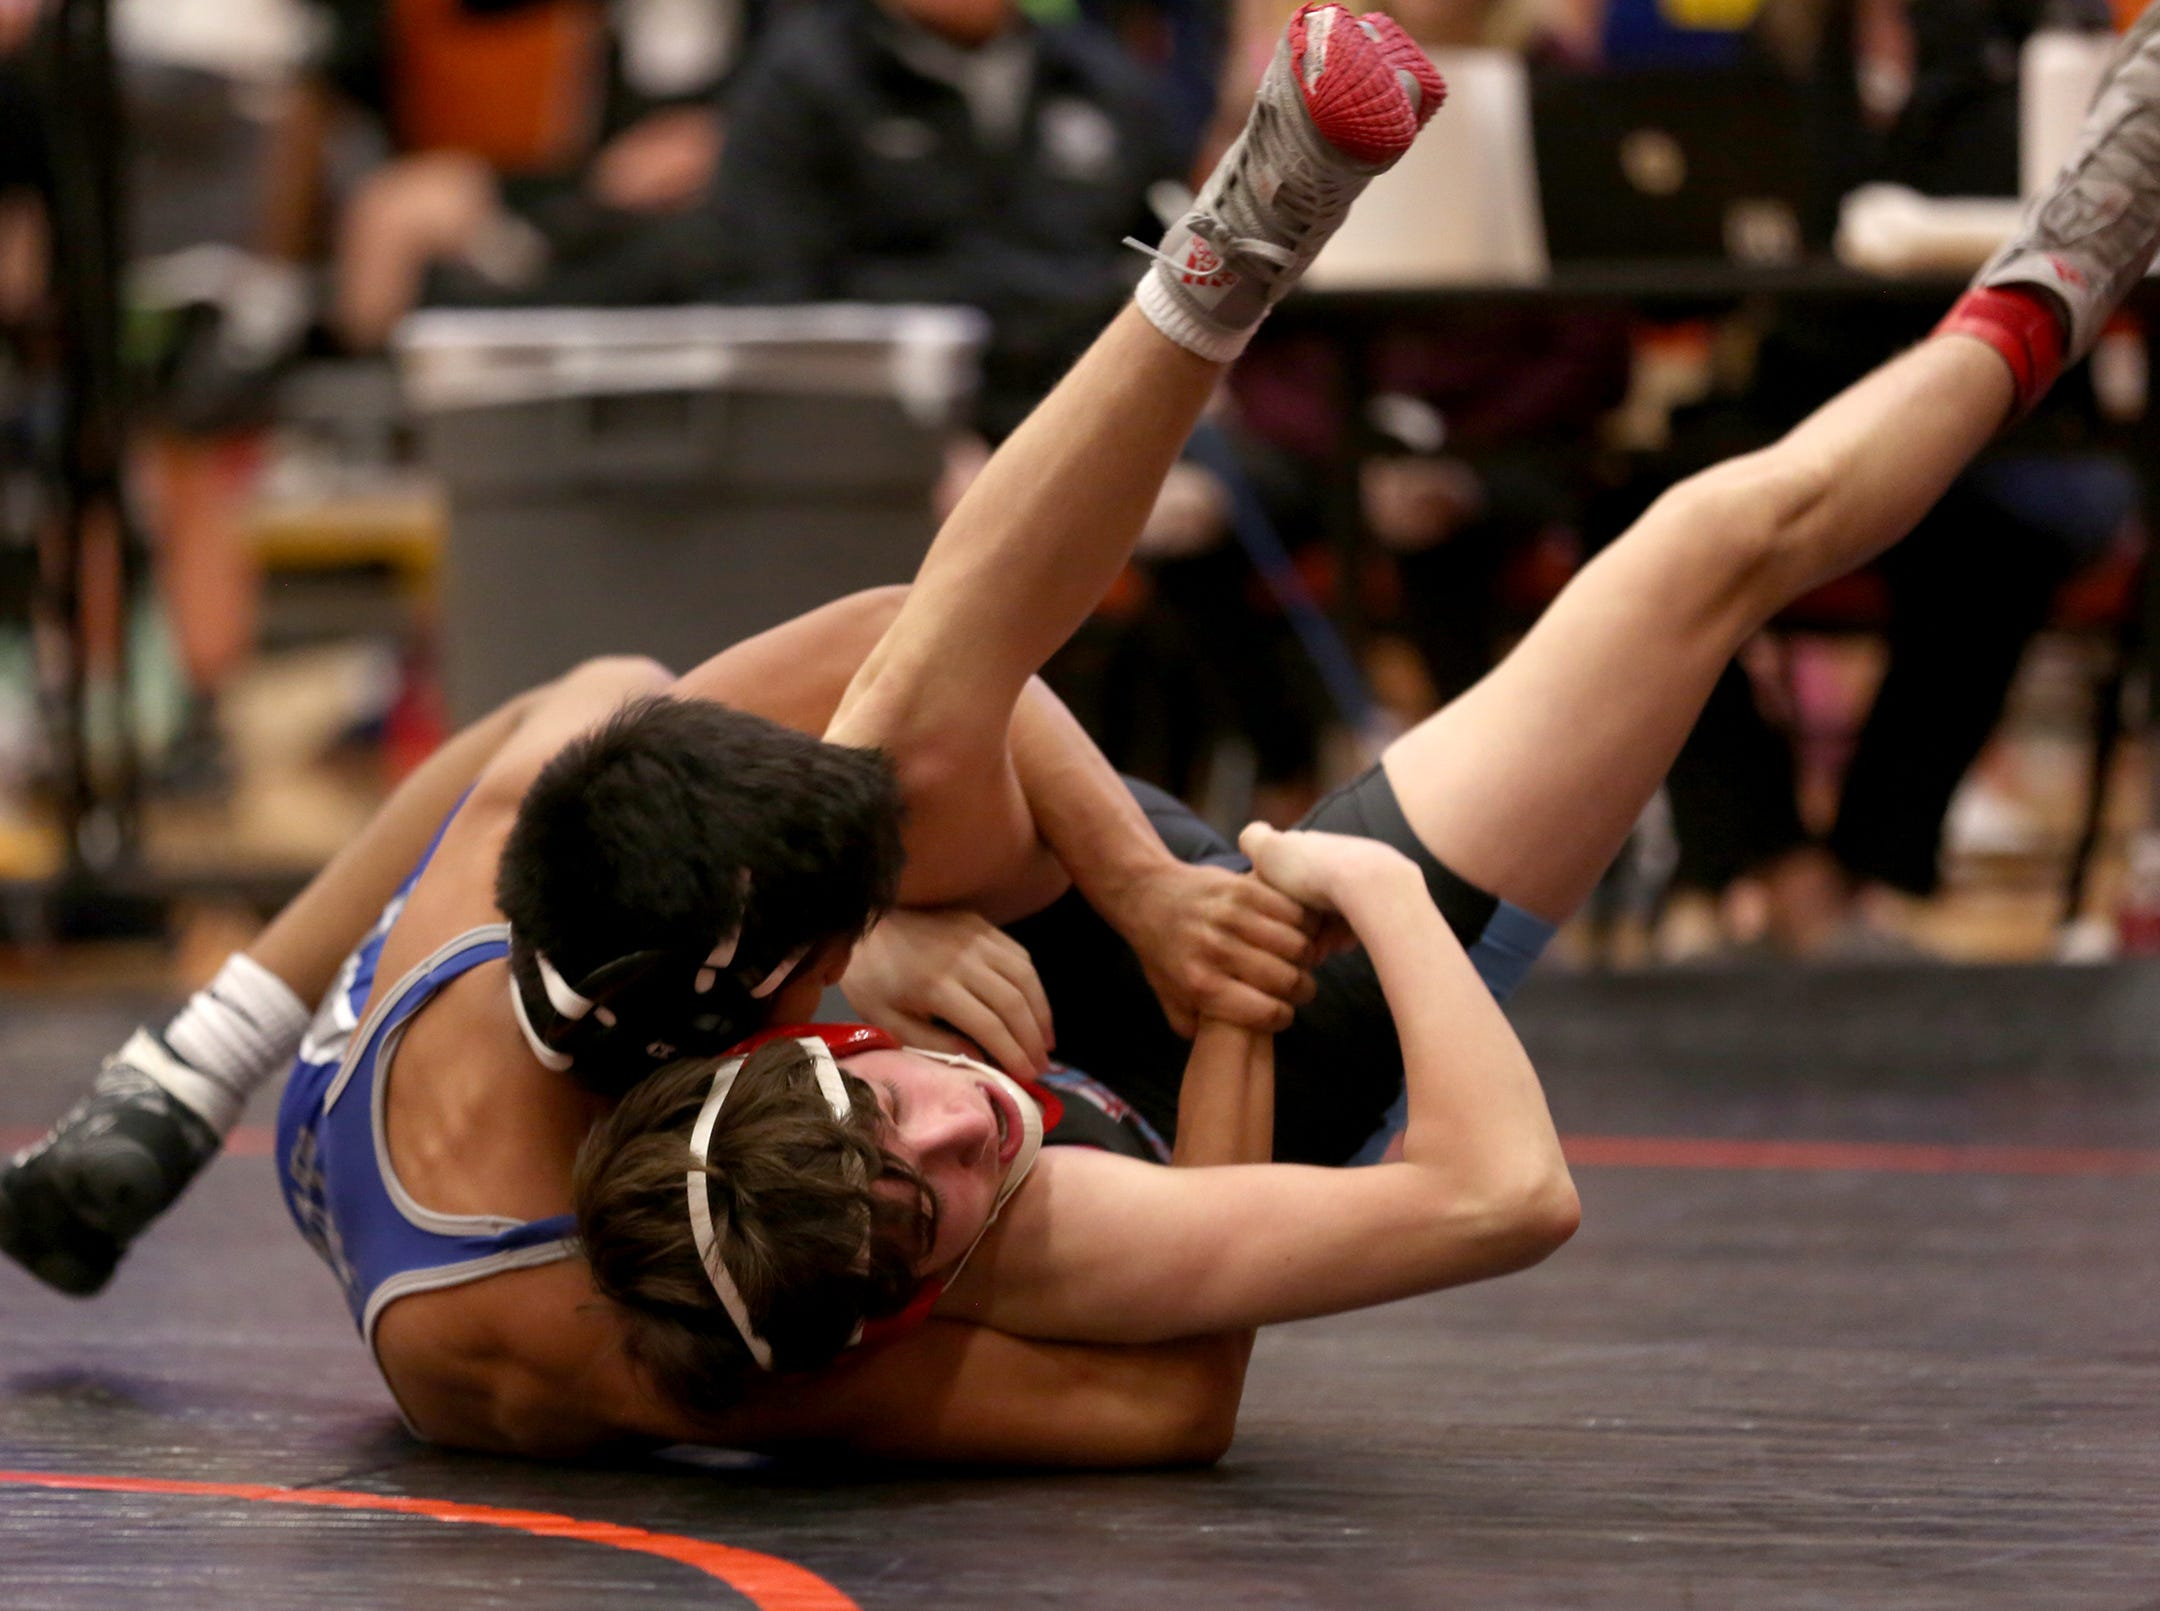 McNary's Daniel Hernandez holds on to South Salem's Hunter Harrison as they compete in the 126 pound weight class during the Mountain Valley Conference district wrestling tournament at Sprague High School in Salem on Friday, Feb. 15, 2019.